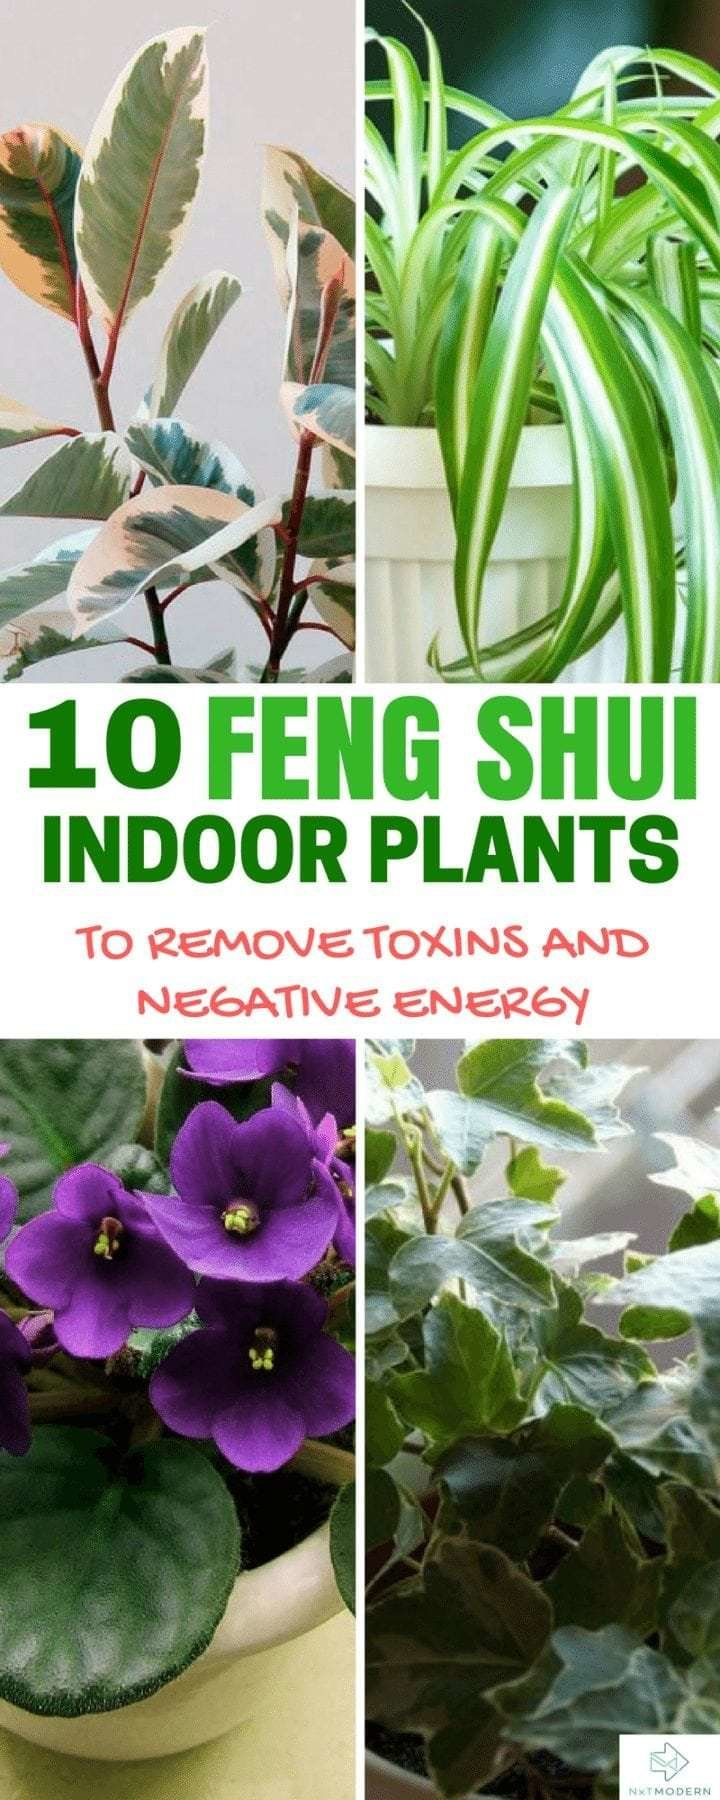 Best 10 Feng Shui Indoor Plants To Spruce Up Your Interior Decor With Pictures